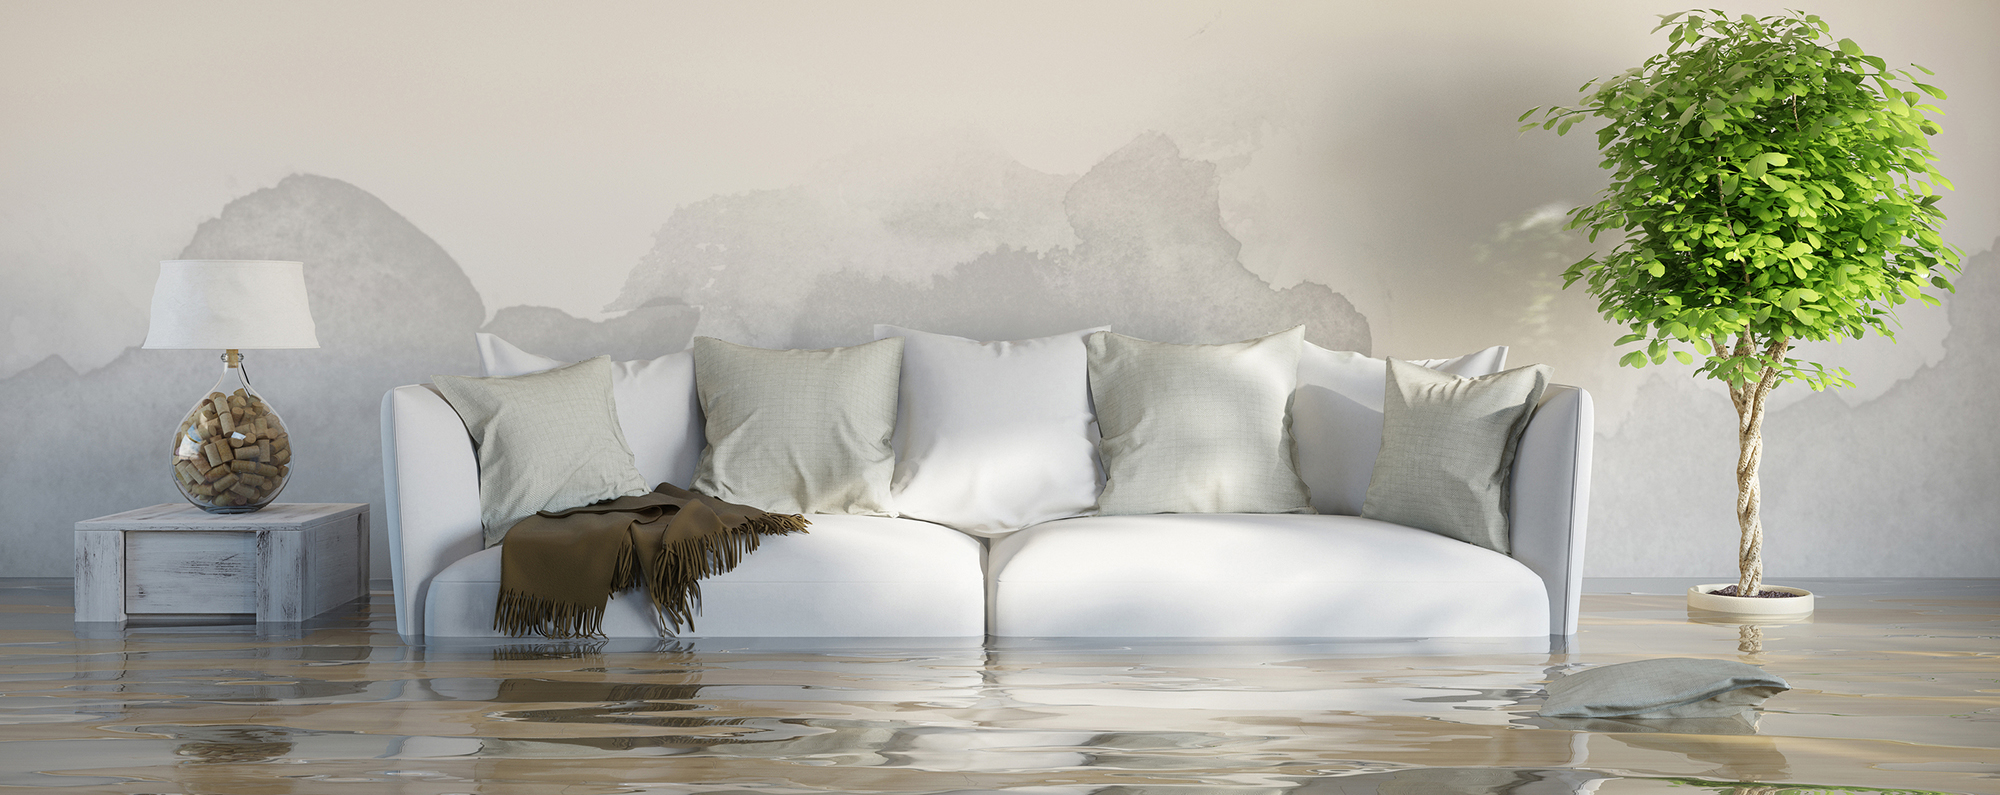 prevent water damage during holiday vacation